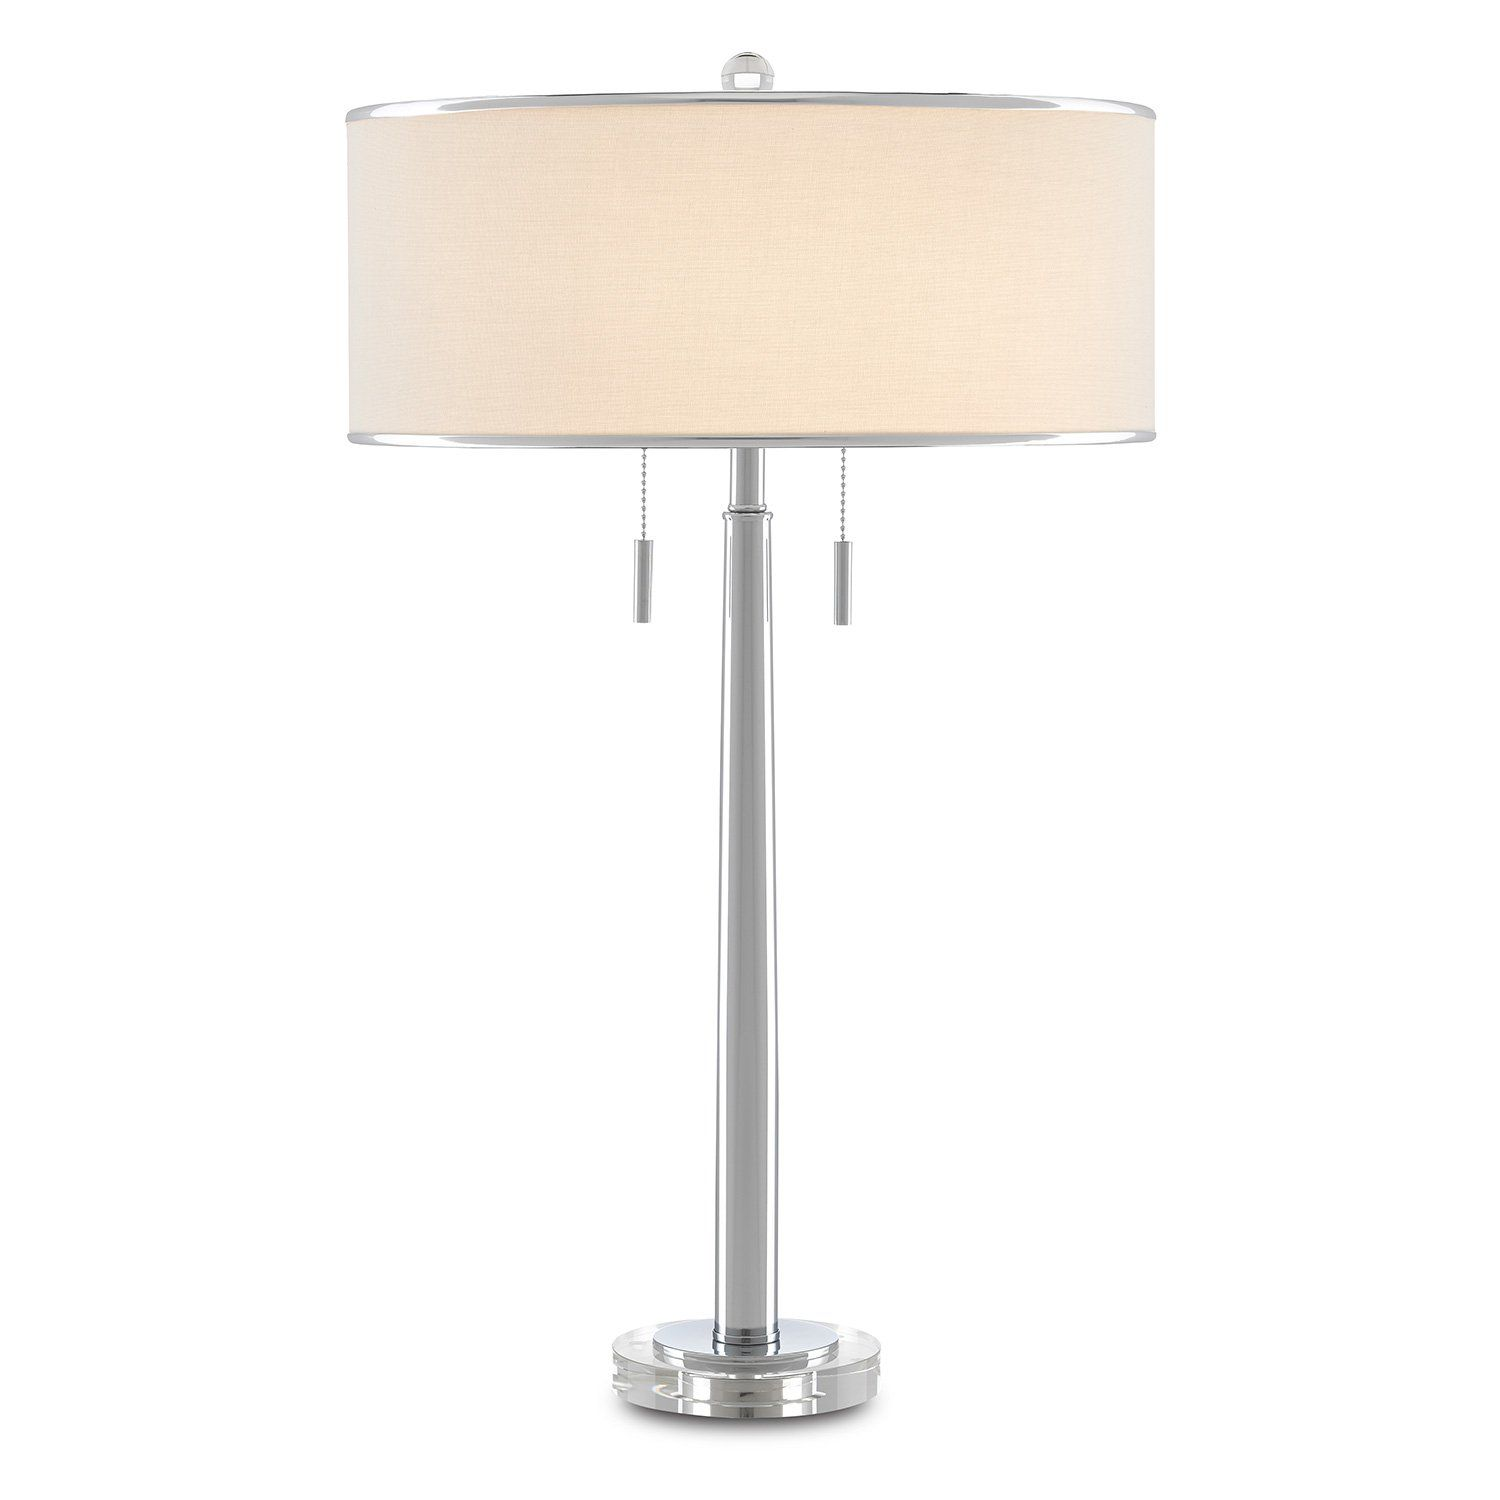 Currey Company Lafew Table Lamp In 2021 Table Lamp Lamp Silver Table Lamps